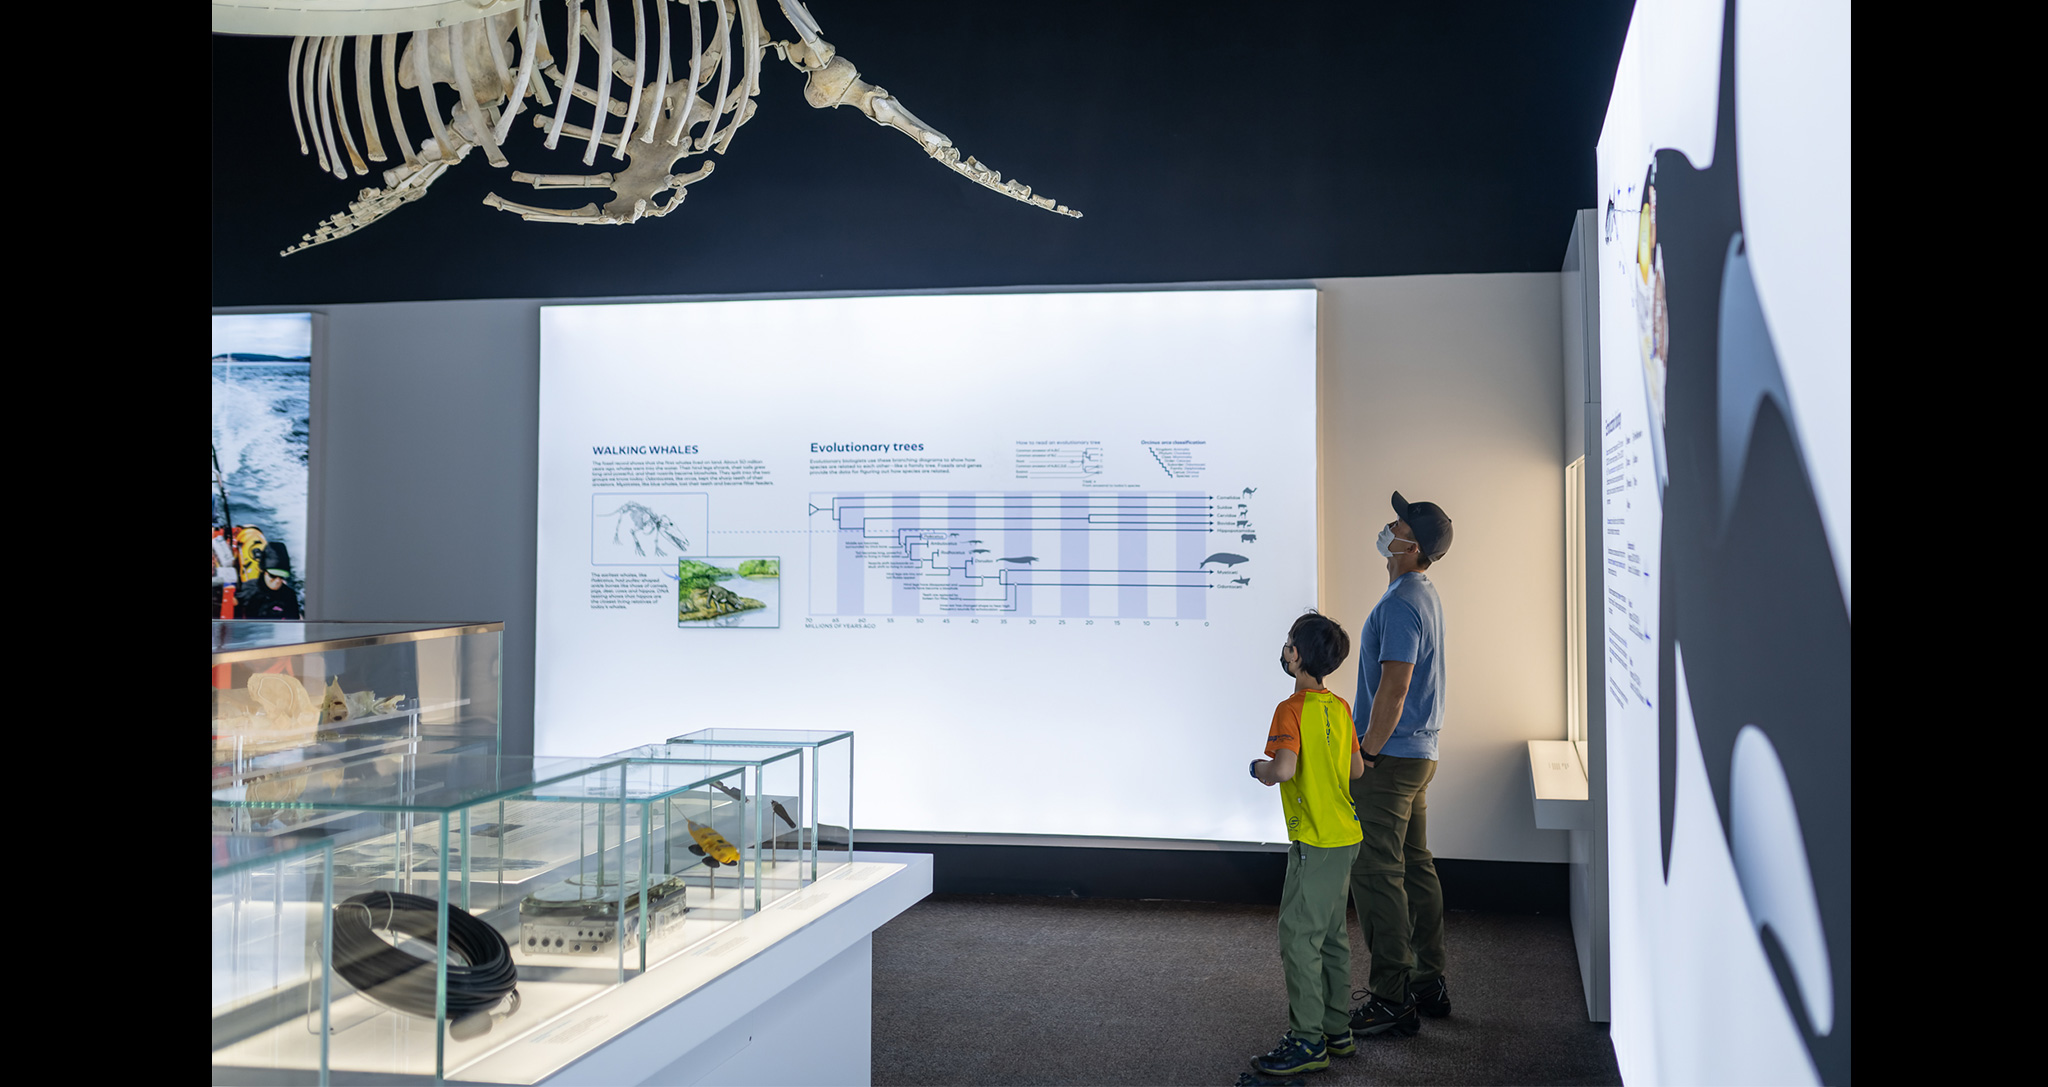 Orcas: Our Shared Future exhibition